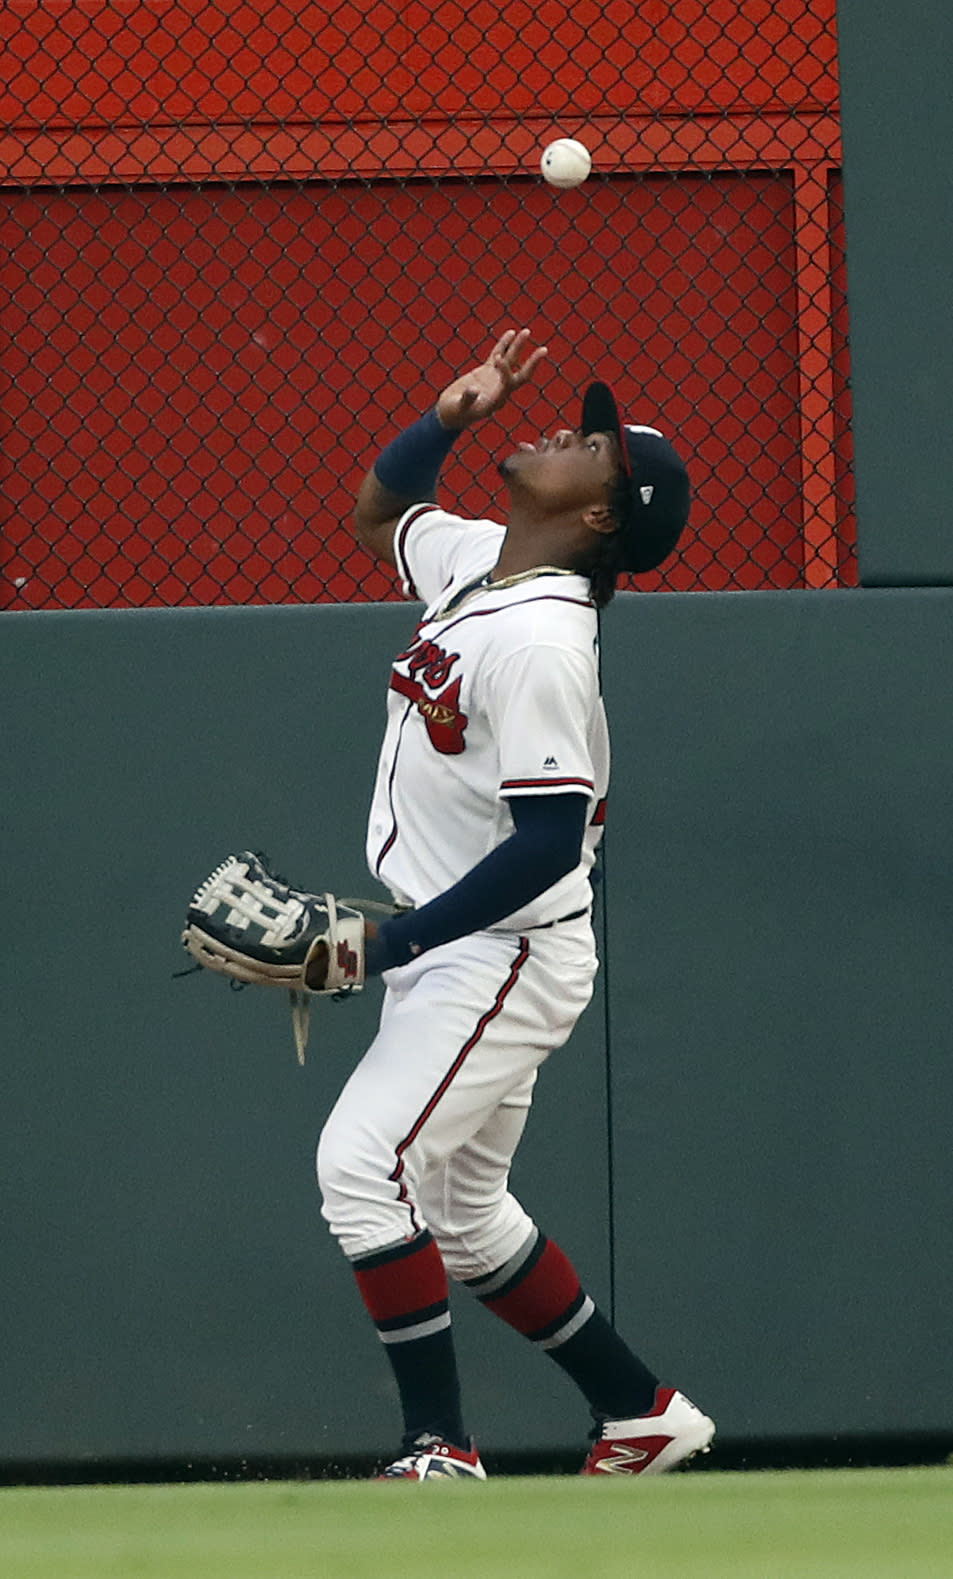 Atlanta Braves center fielder Ronald Acuna Jr. (13) bare hands a ball hit for double by New York Mets' Jeff McNeil in the third inning of a baseball game Tuesday, June 18, 2019, in Atlanta. (AP Photo/John Bazemore)